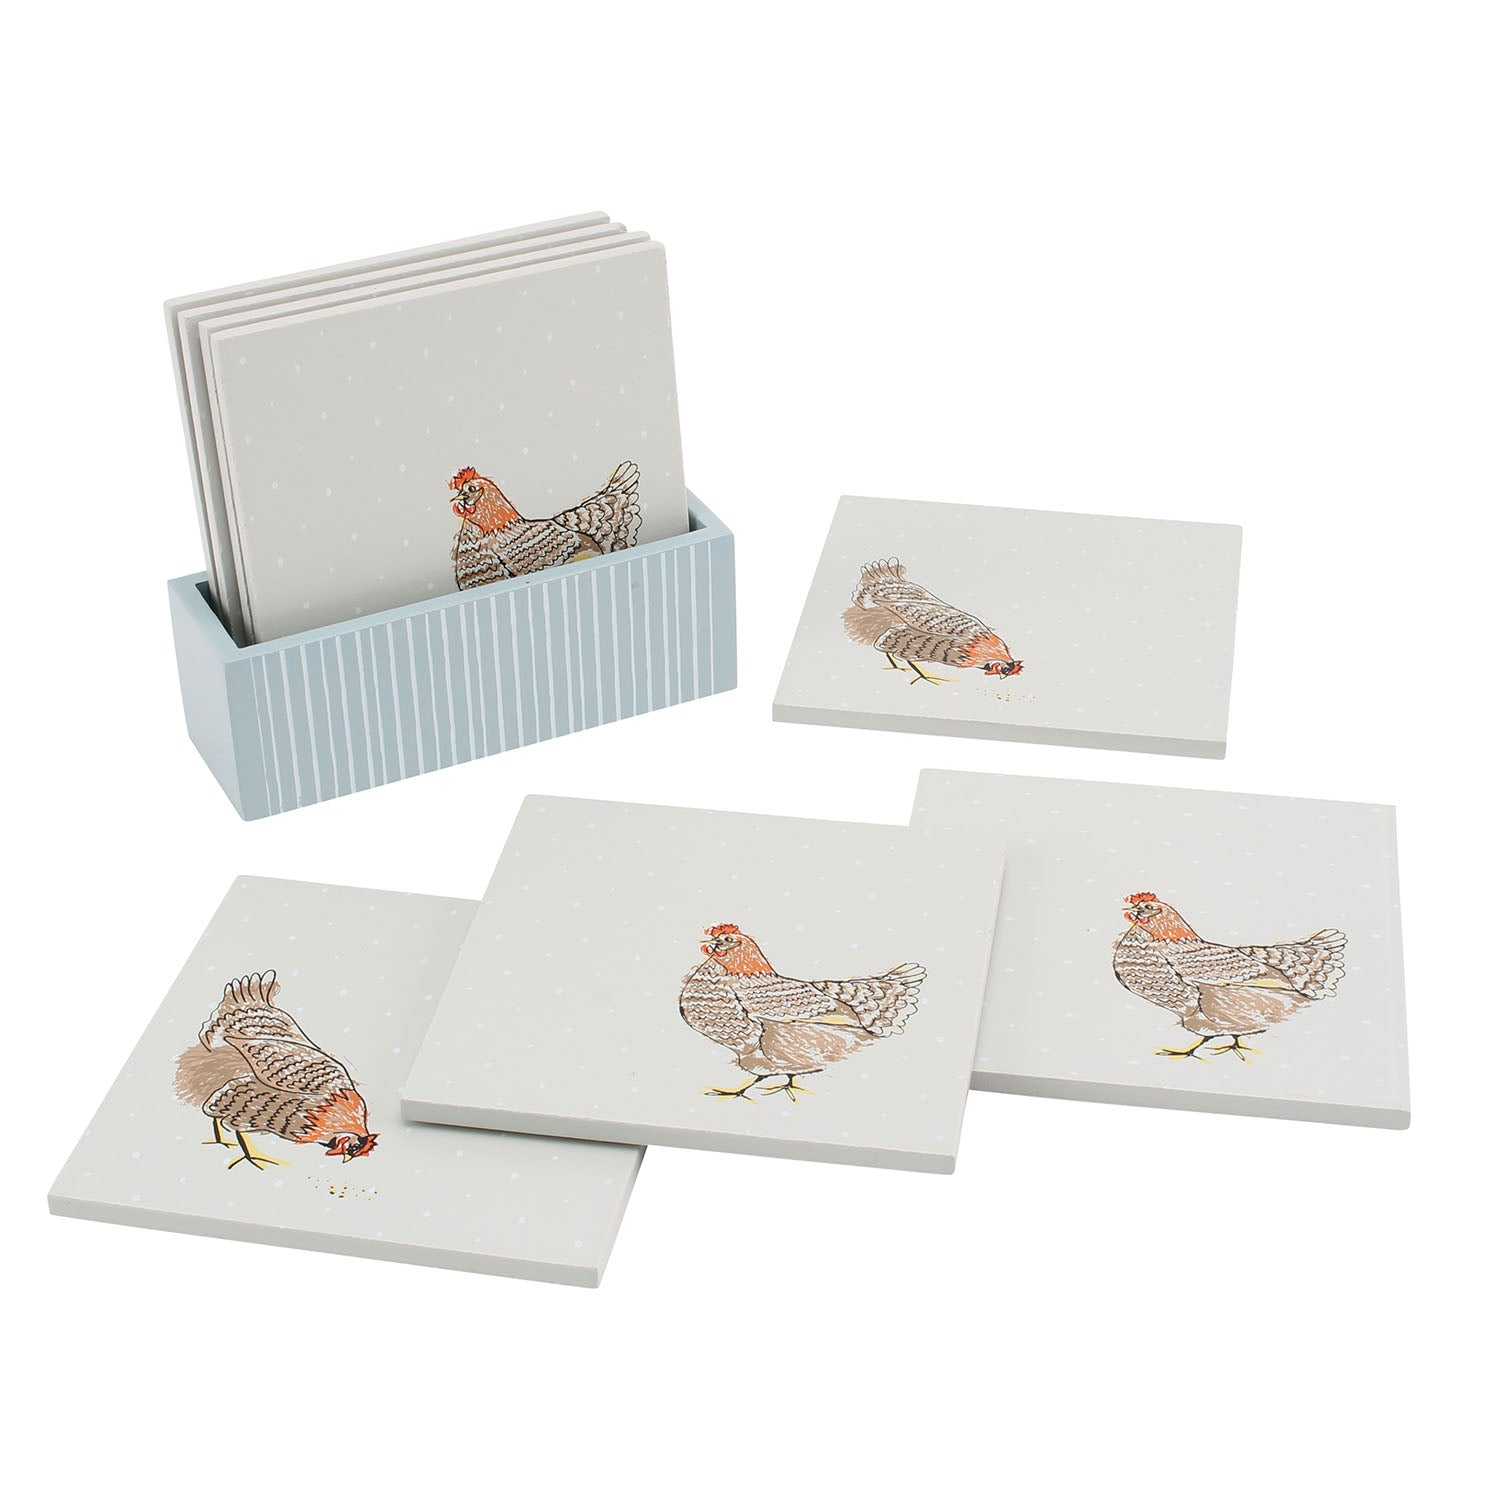 CGB GB00535 Holly House Chicken Coasters